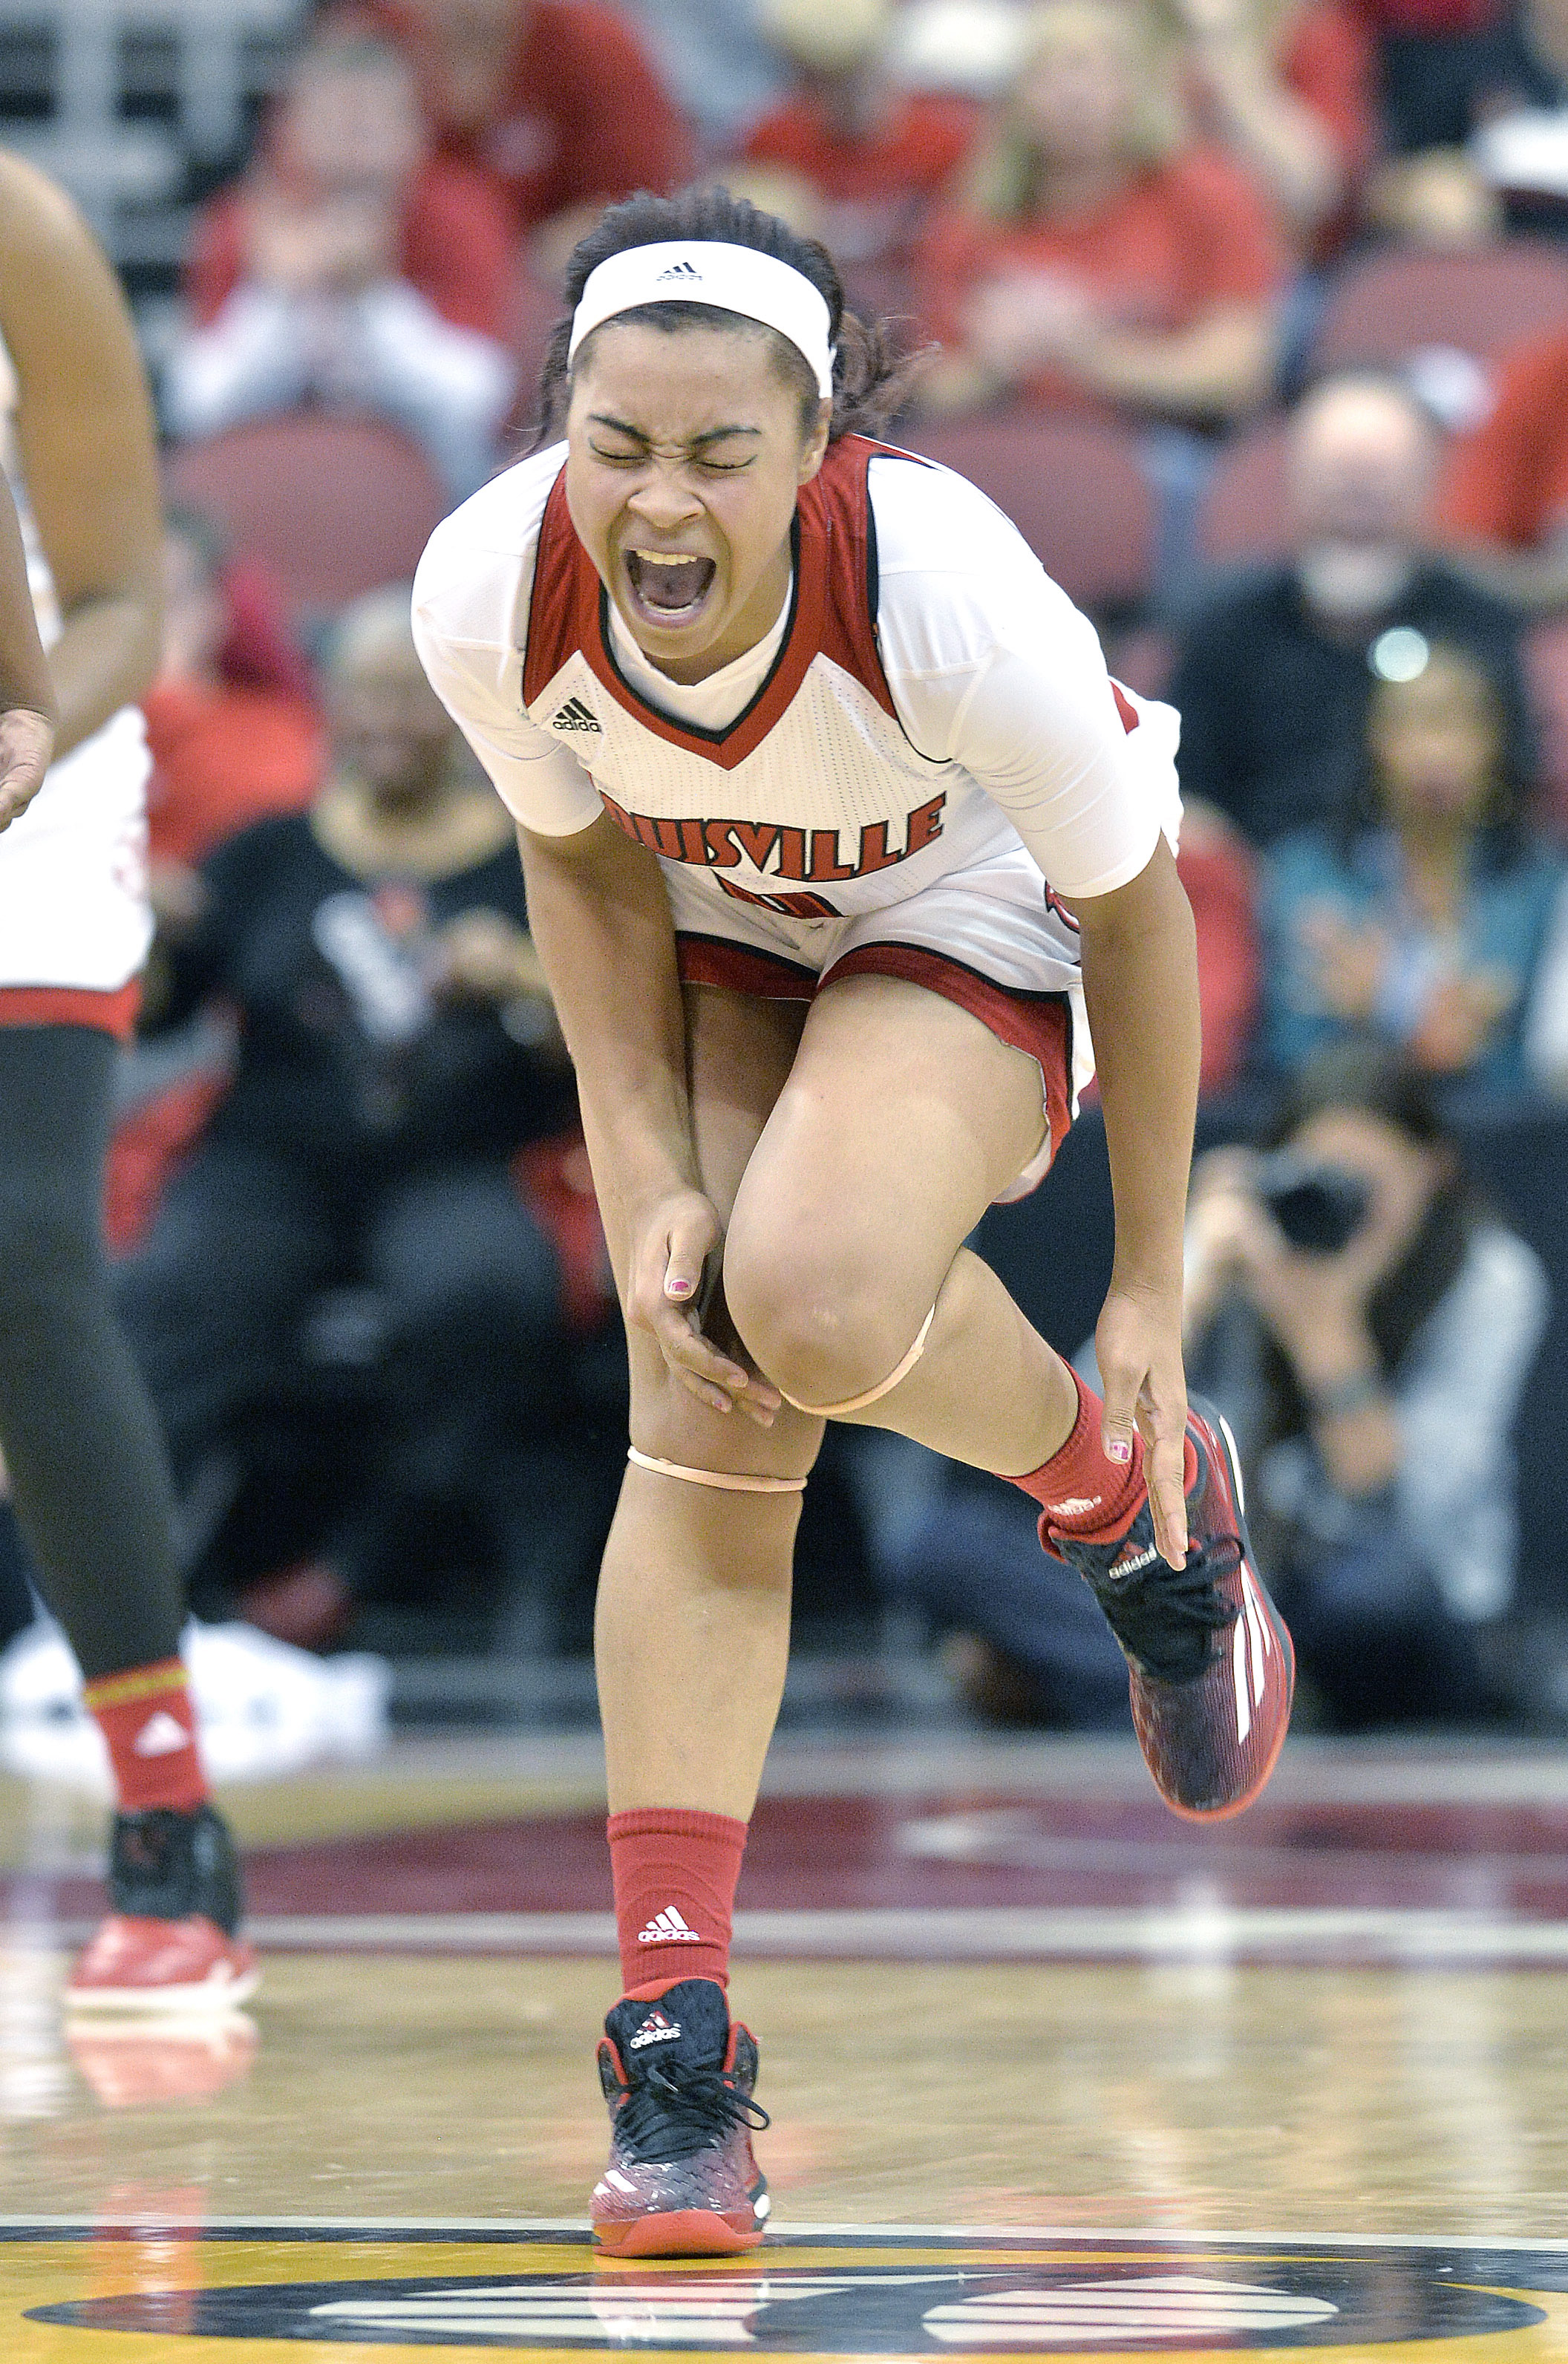 Louisville's Mariya Moore grimaces in pain after twisting her ankle during the second half of an NCAA college basketball game against California, Sunday, Nov. 15, 2015, in Louisville, Ky. California won 75-71. (AP Photo/Timothy D. Easley)